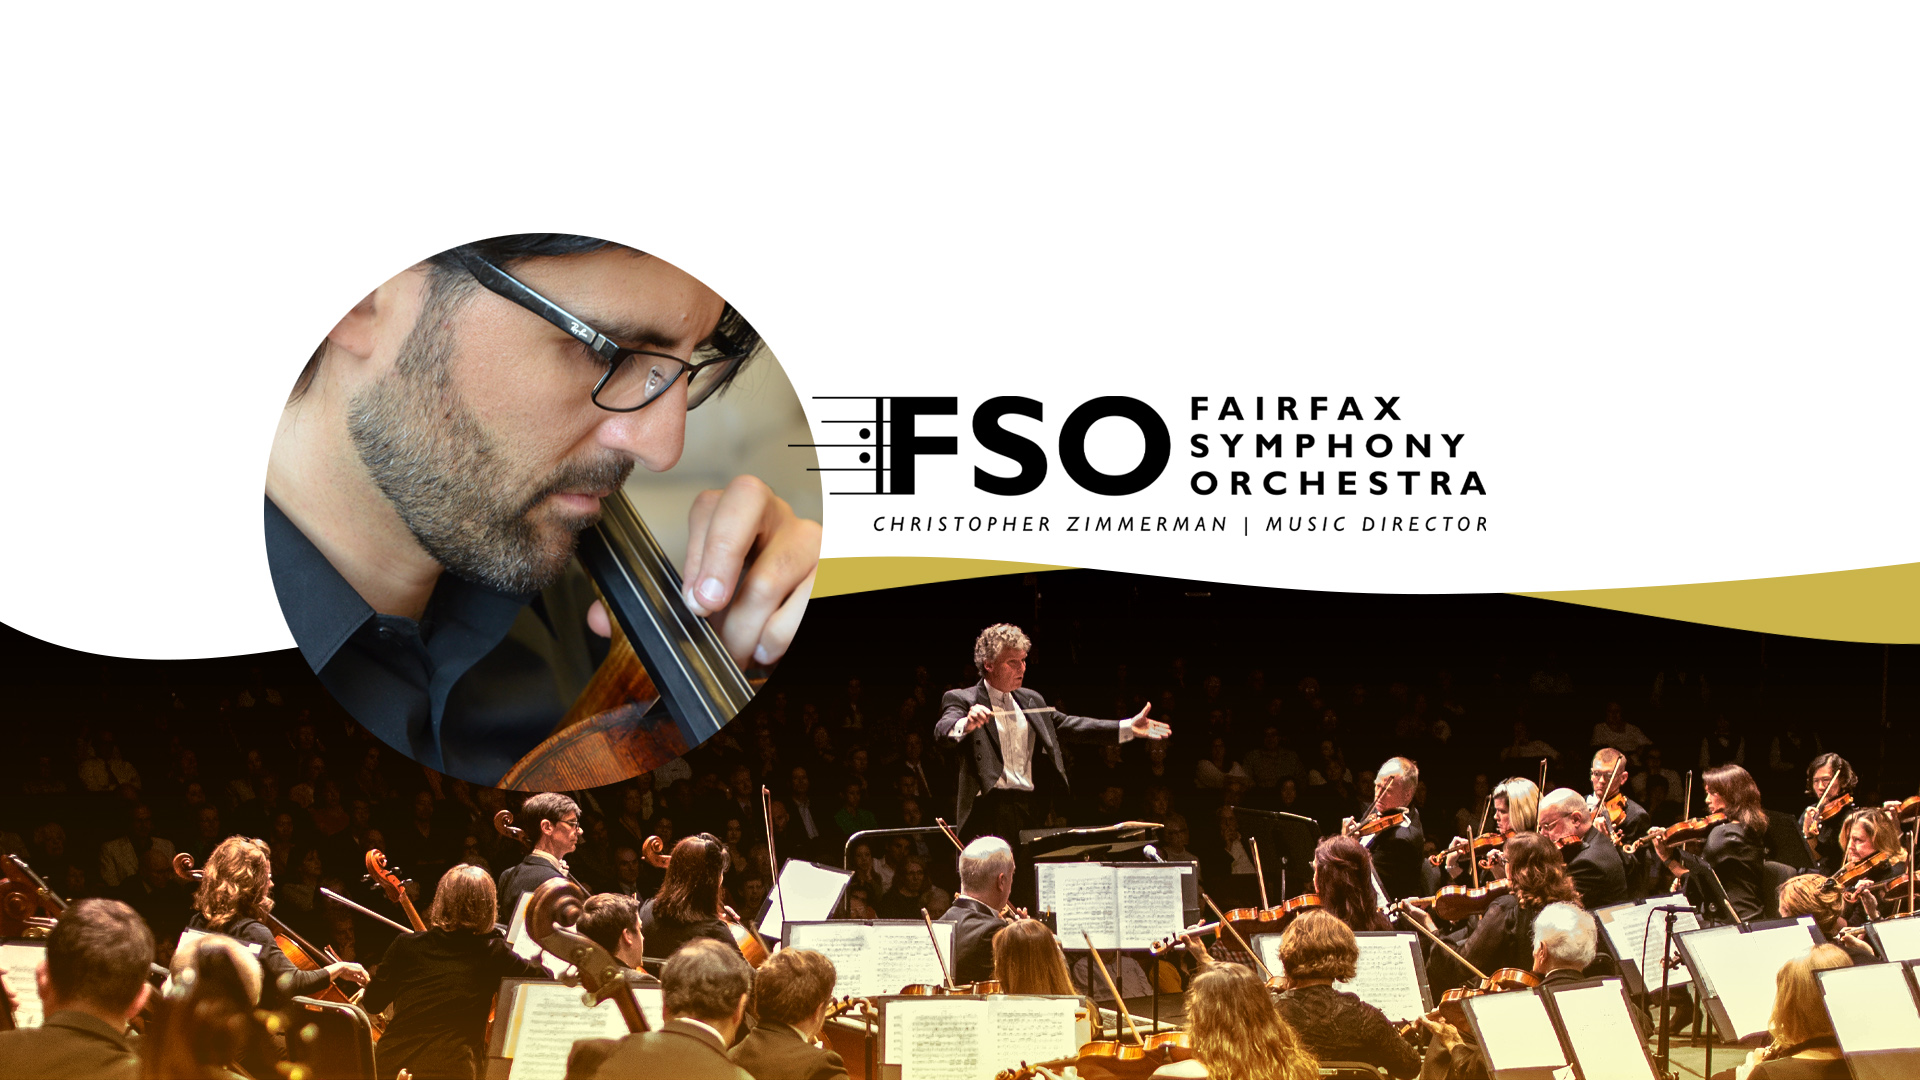 Fairfax, Fairfax symphony, Fairfax Symphony Orchestra, capital one hall, capital one center, things to do in DC, Tysons, orchestral, classical, beethoven, Bernstein, saint saens